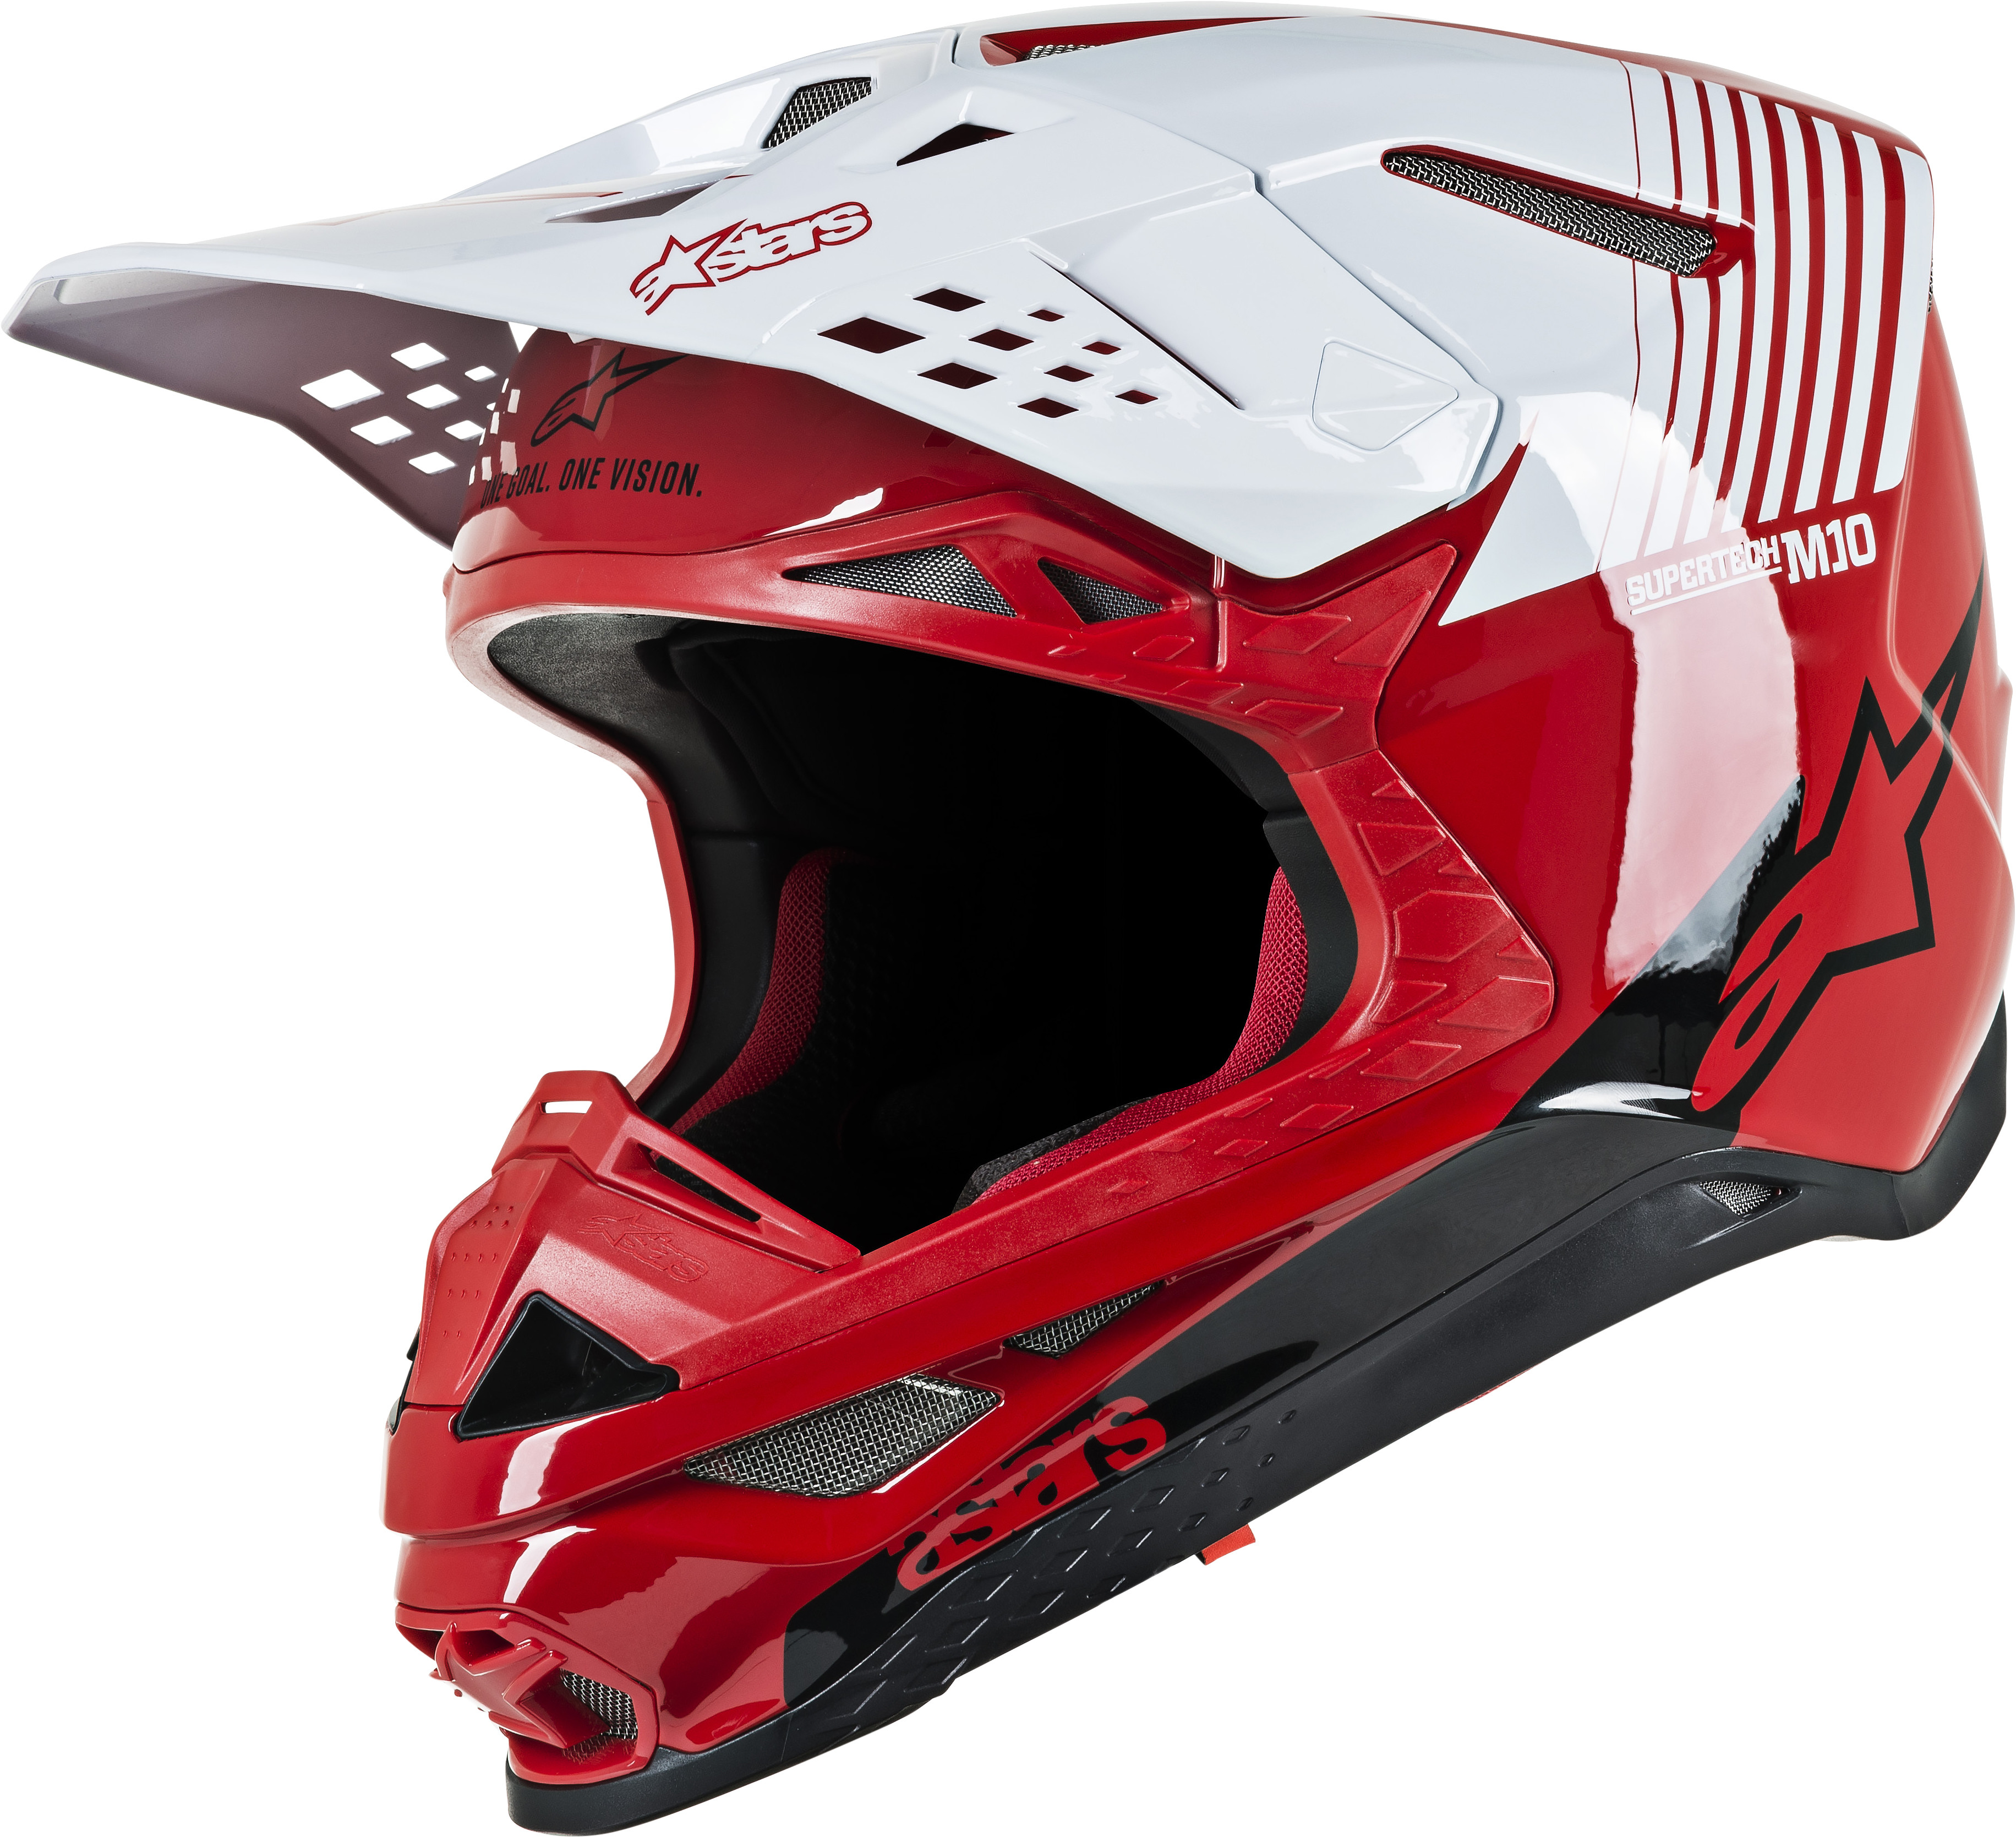 SUPERTECH M10 Dyno Helmet,  Red White MD 482-9002M